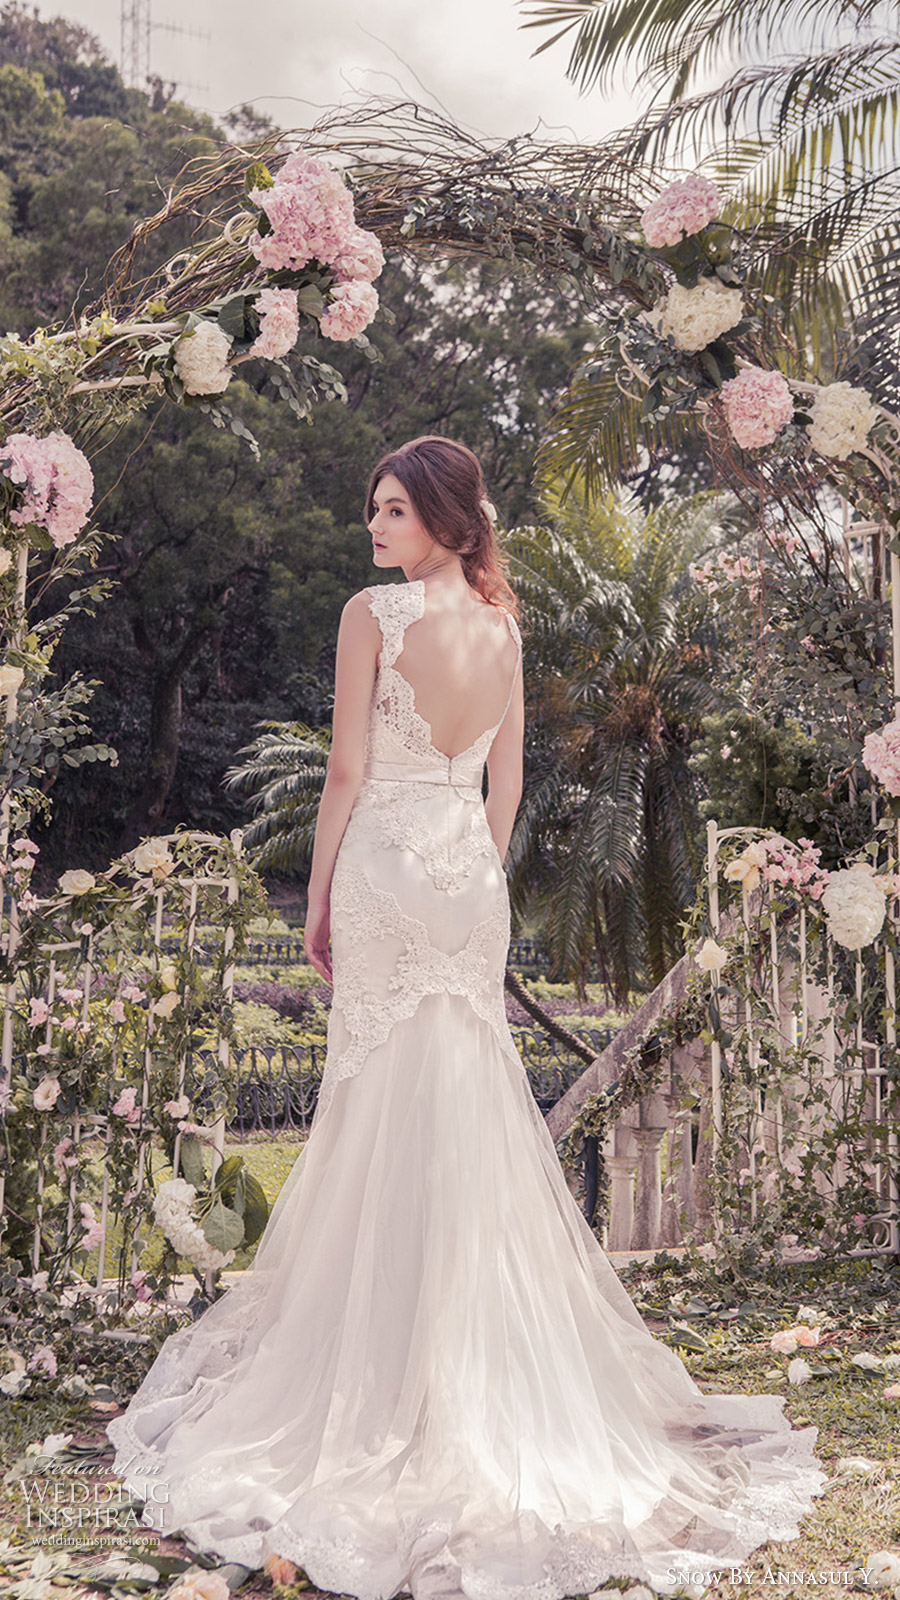 snow annasul y 2017 bridal (sa3262b) sleeveless queen anne mermaid sheath lace wedding dress bv open back train